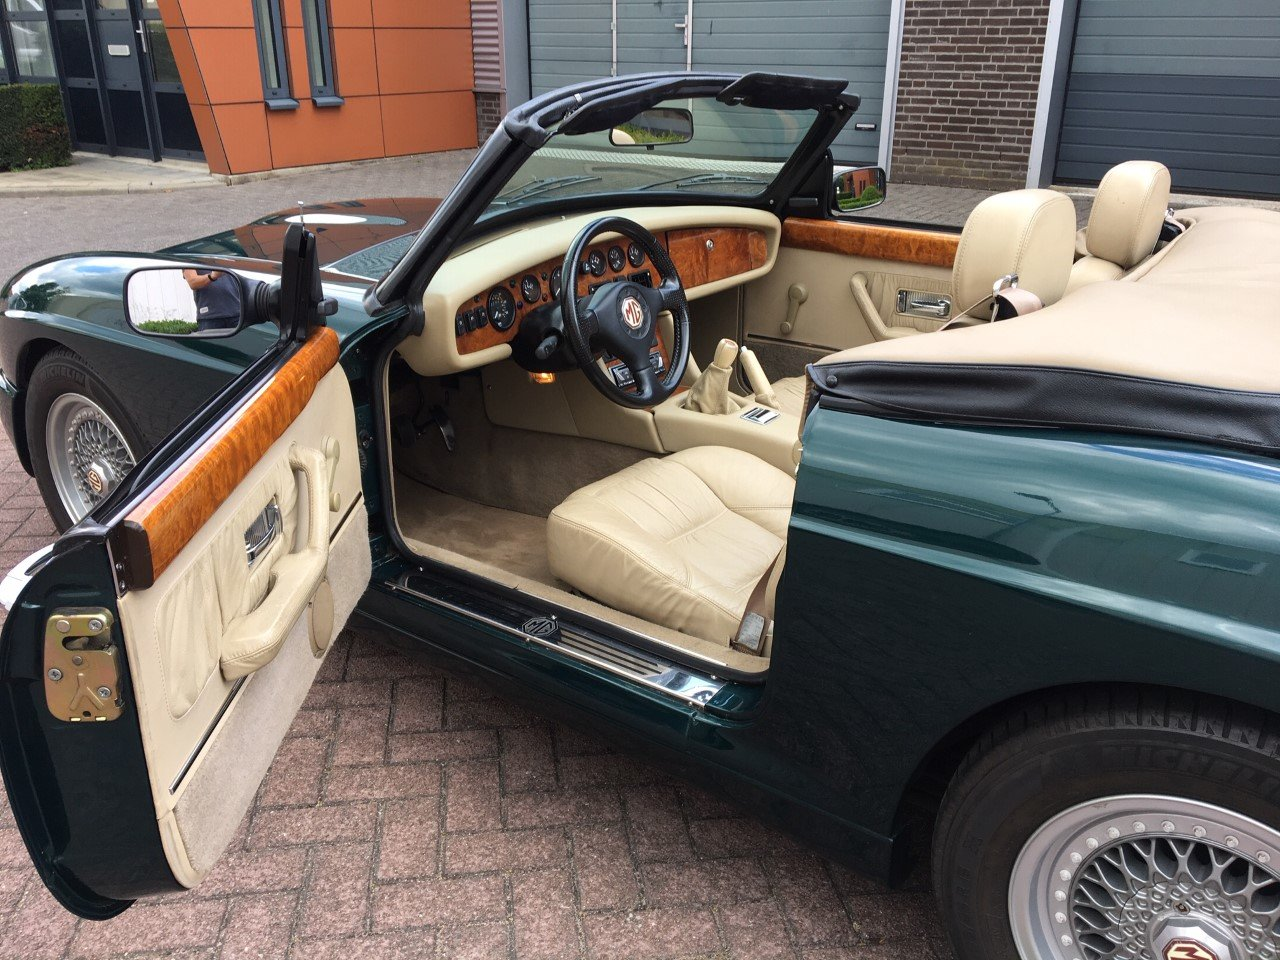 1993 MG RV8 LHD British Racing Green For Sale (picture 3 of 6)